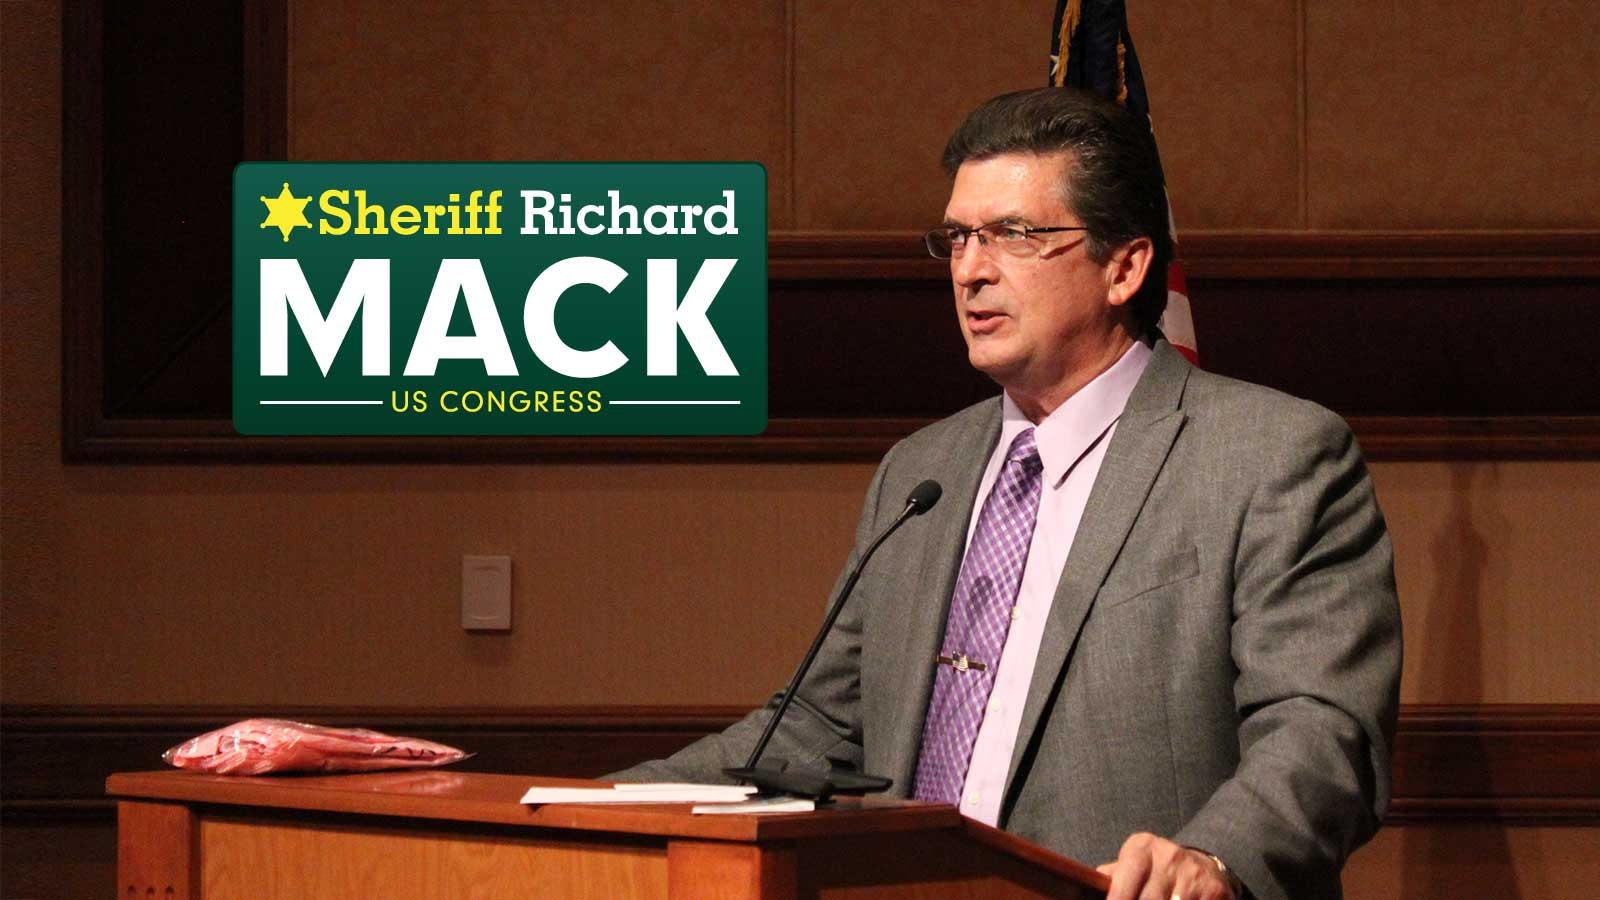 Sheriff Richard Mack for Congress